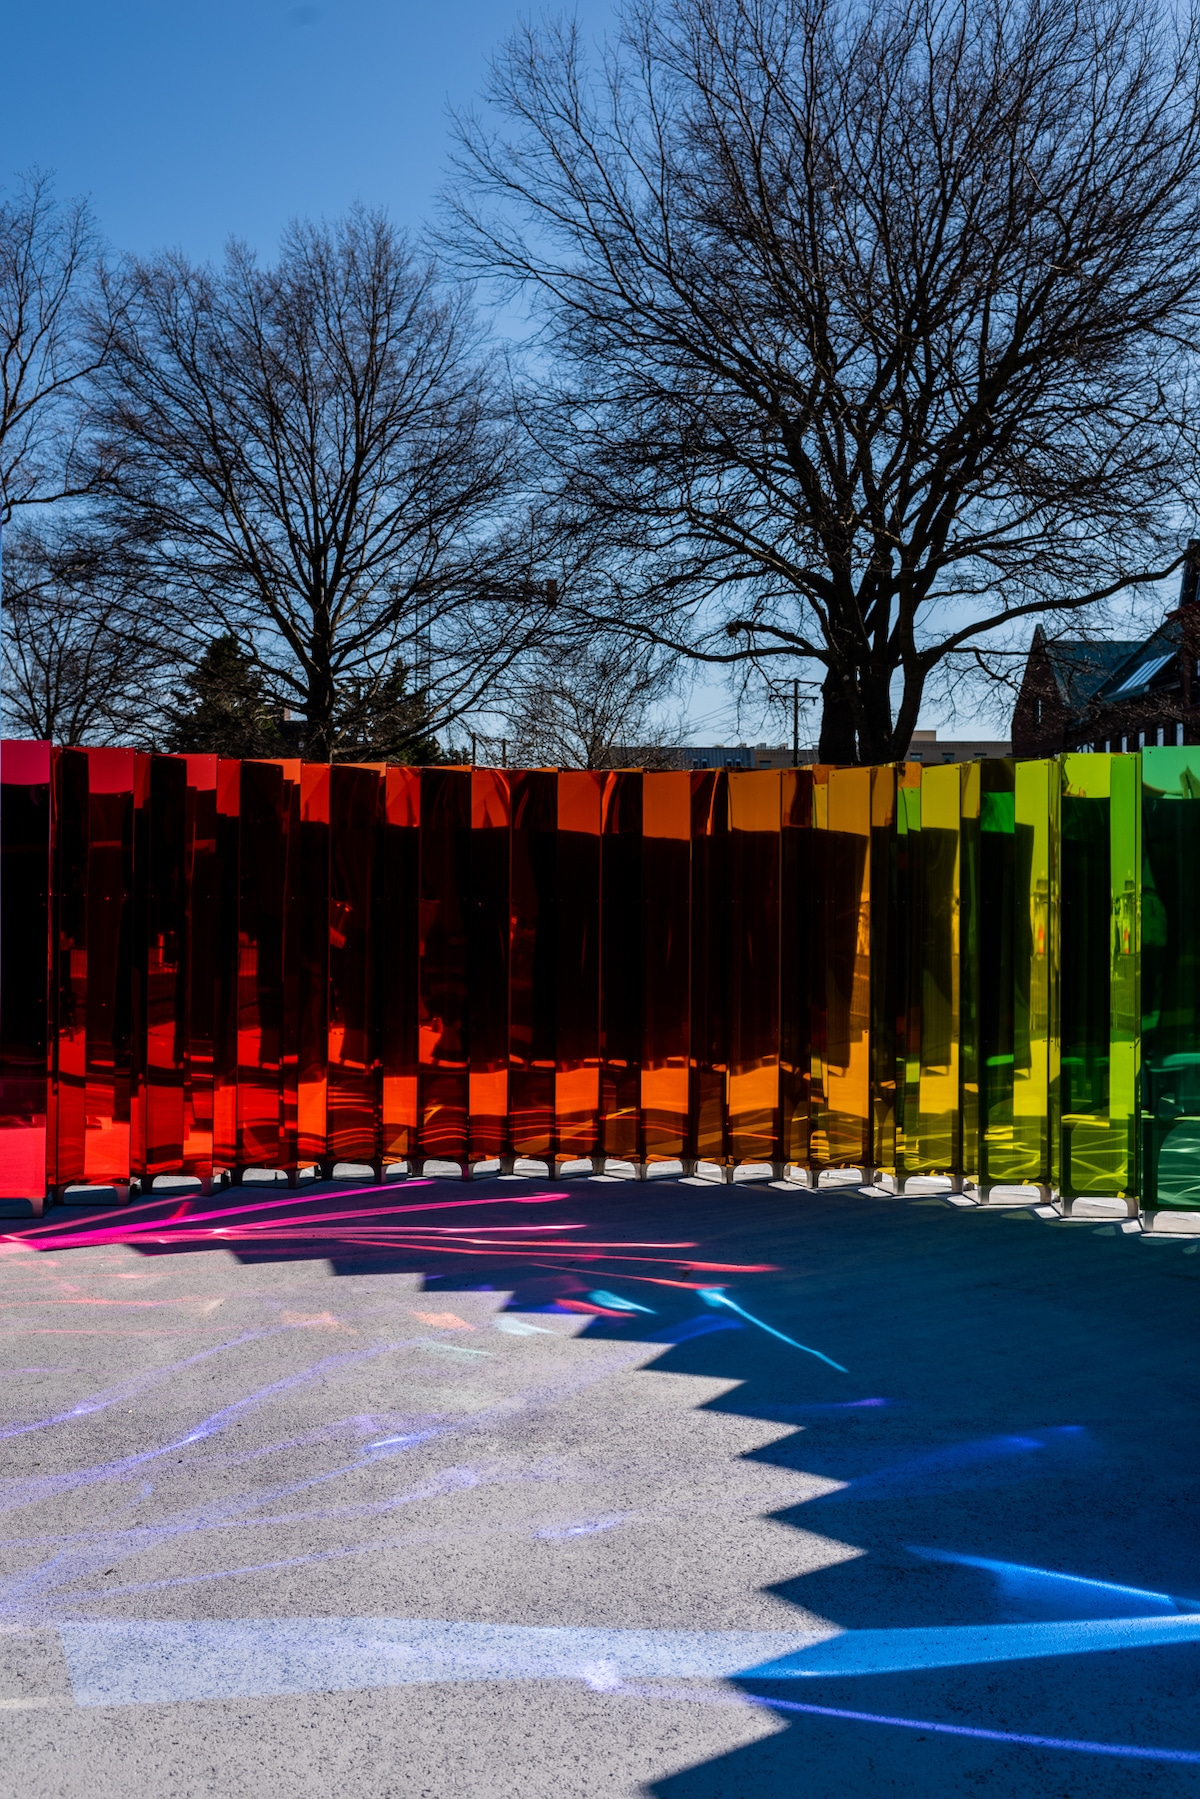 Public Art Installation by Softlab in Alexandra, Virginia